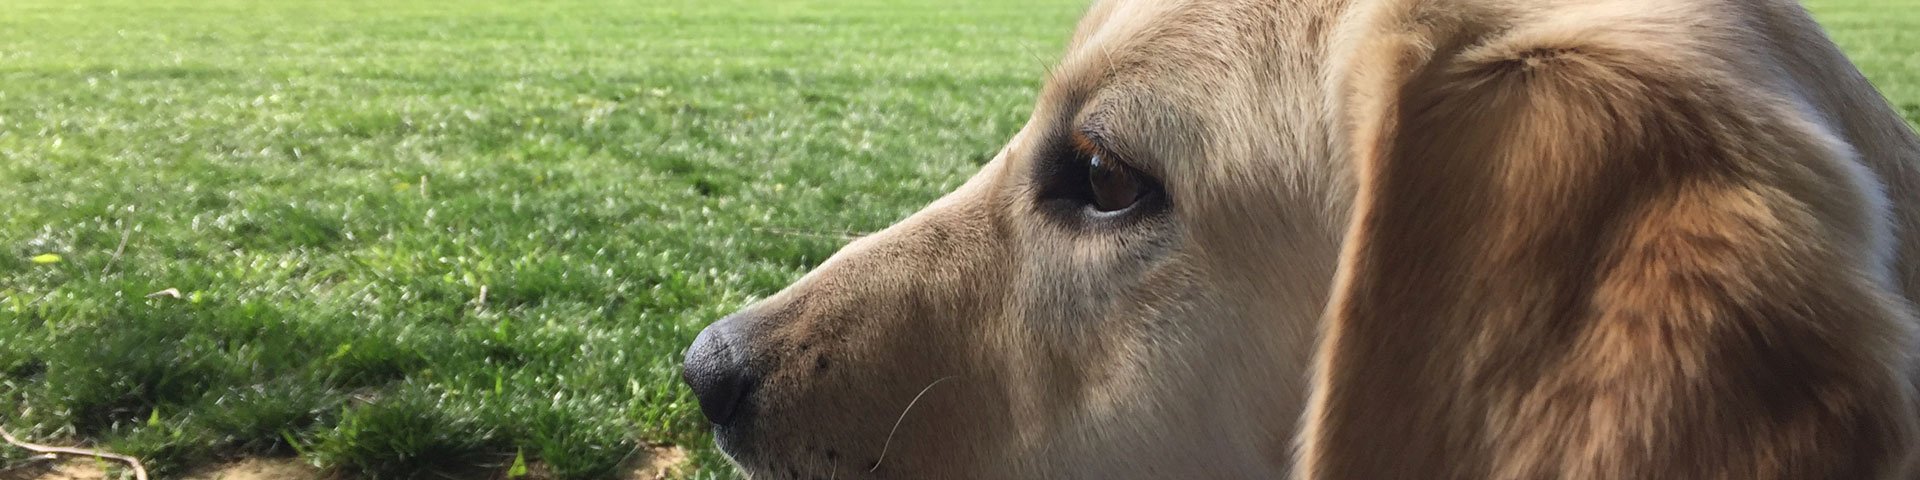 A yellow Labrador retriever puppy looks out on a green field.